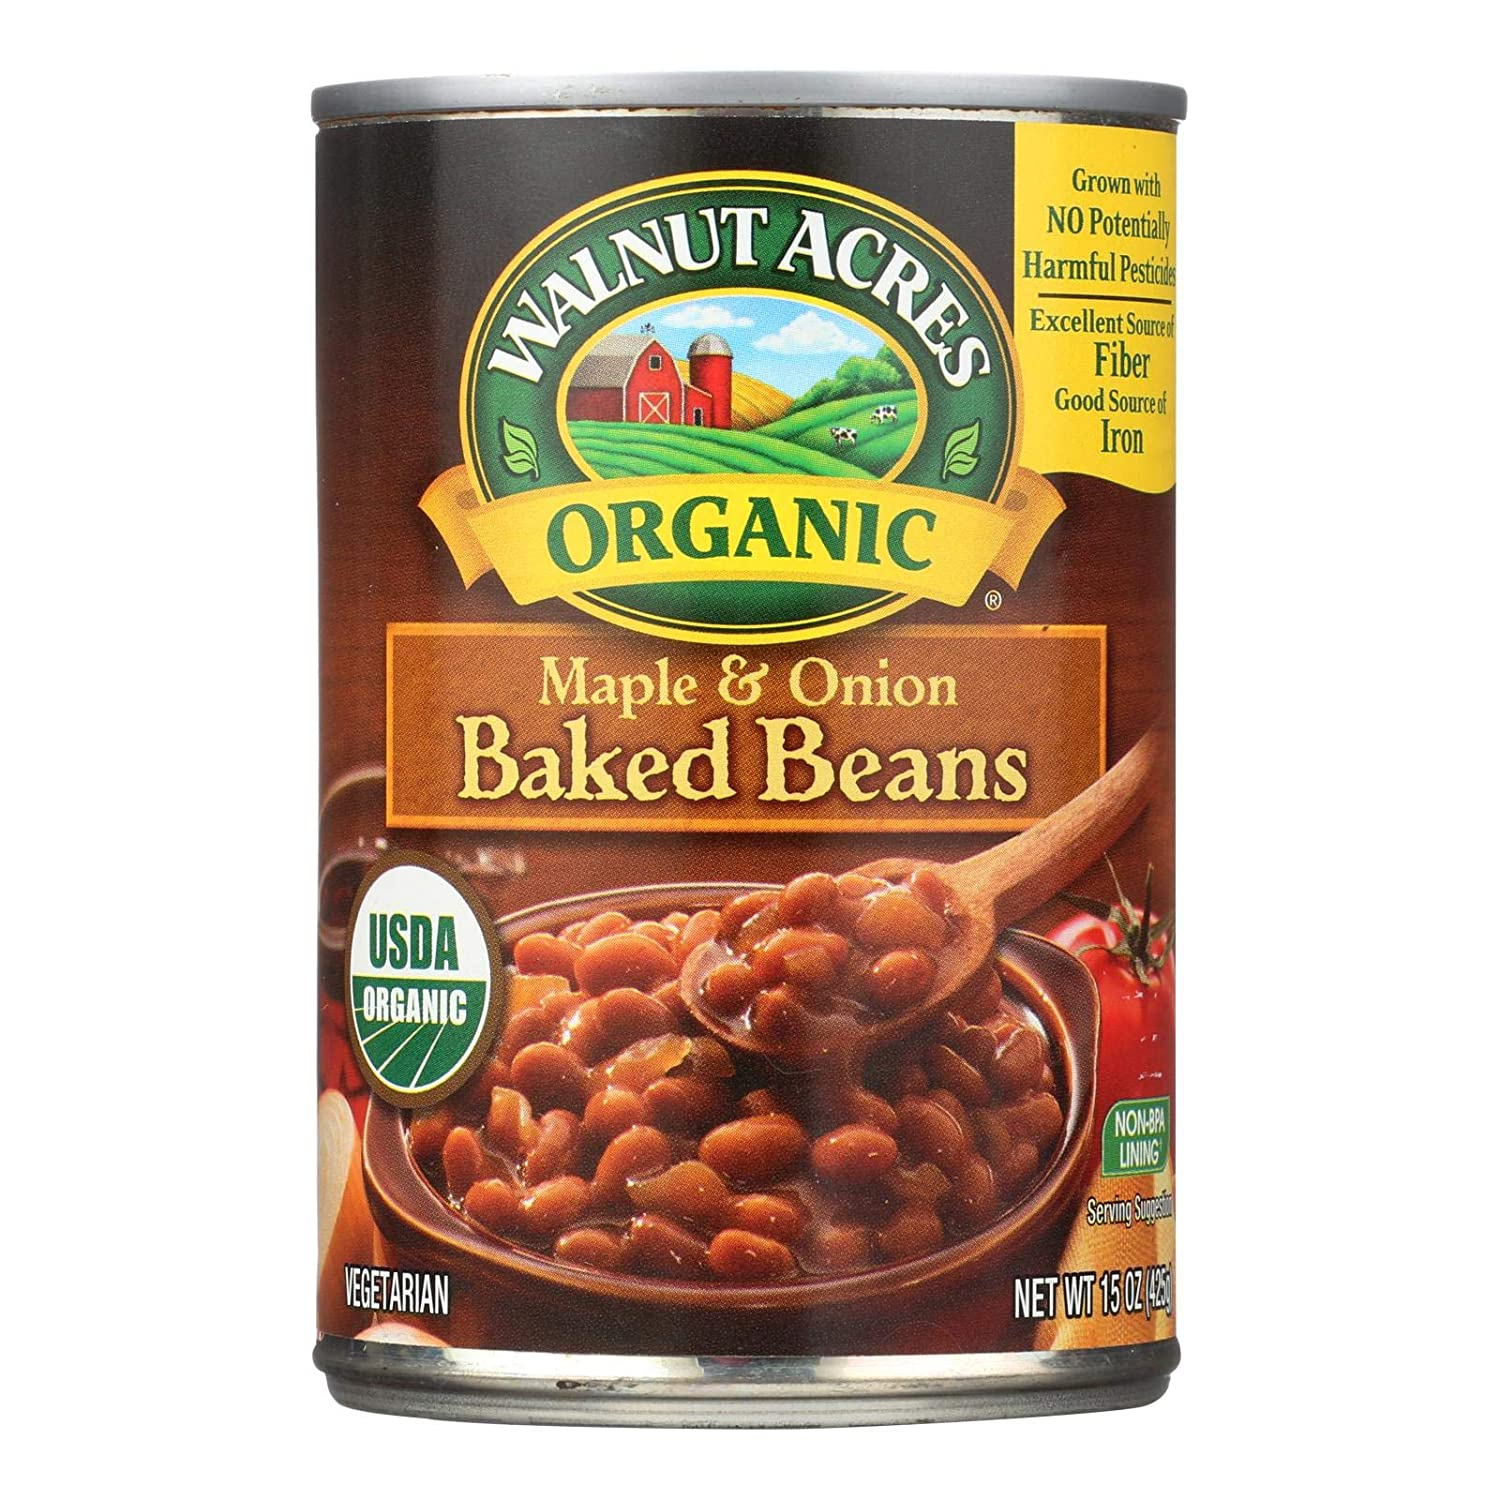 Walnut Acres Organic Baked Beans, Maple Onion, 15 Ounce Cans (Pack of 12) ( Value Bulk Multi-pack)